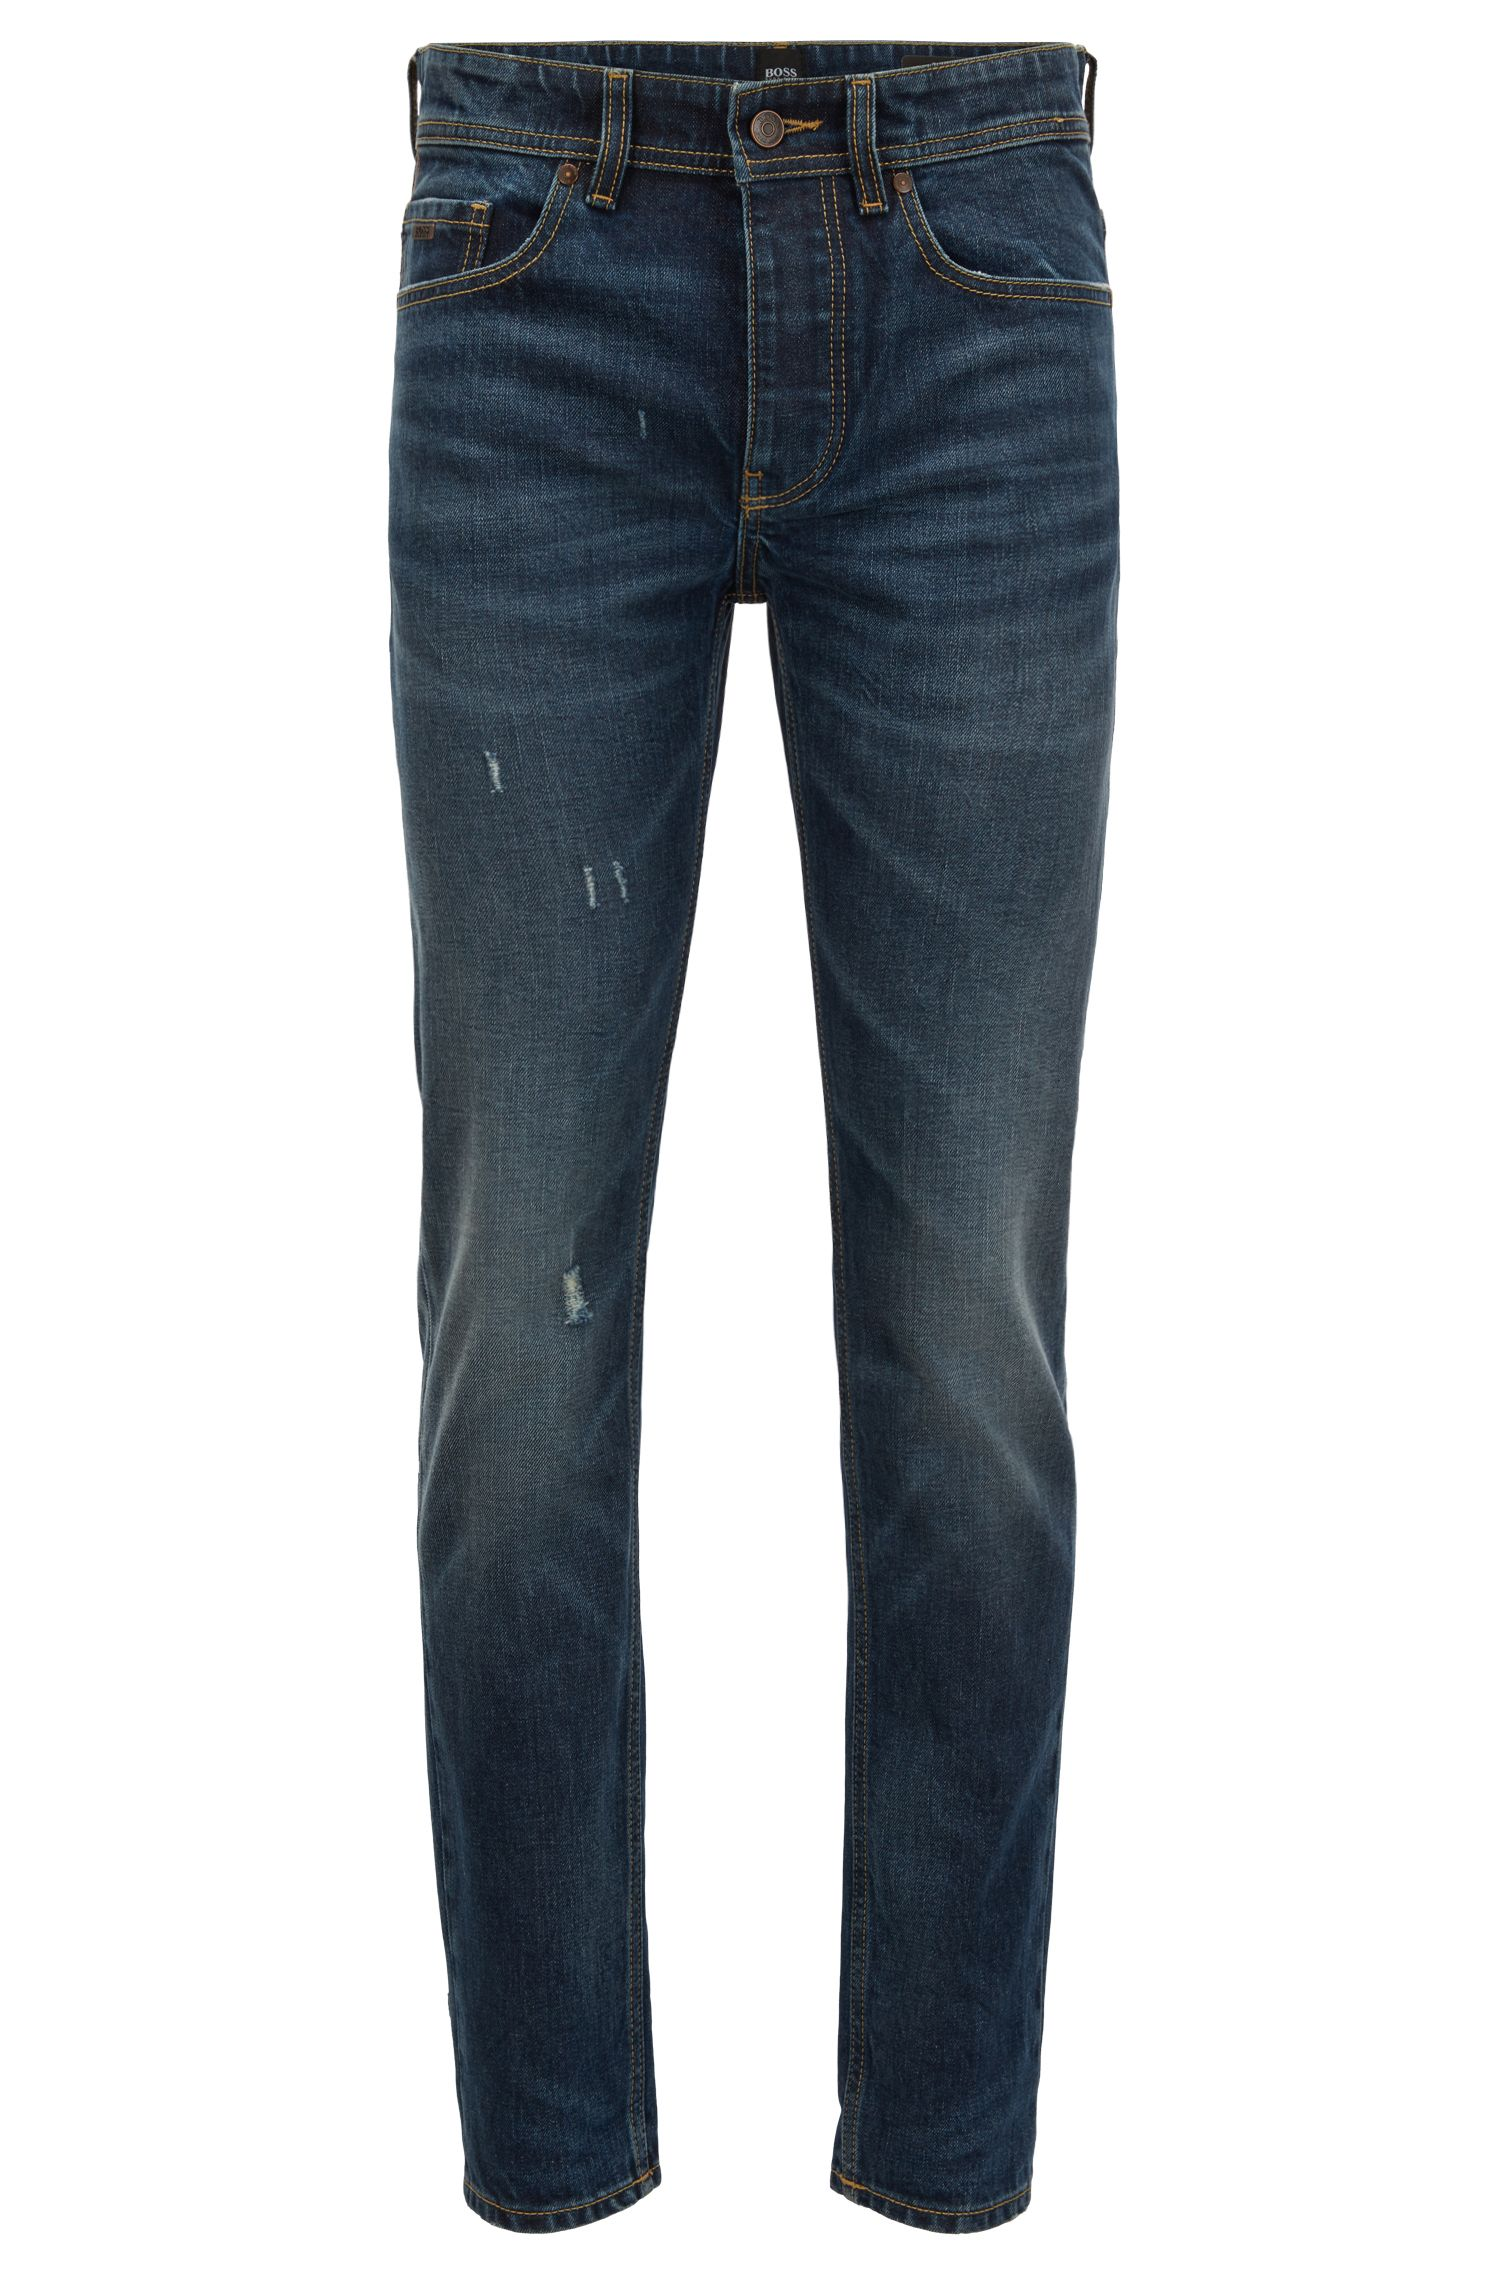 Jeans tapered fit in comodo denim slub-yarn elasticizzato